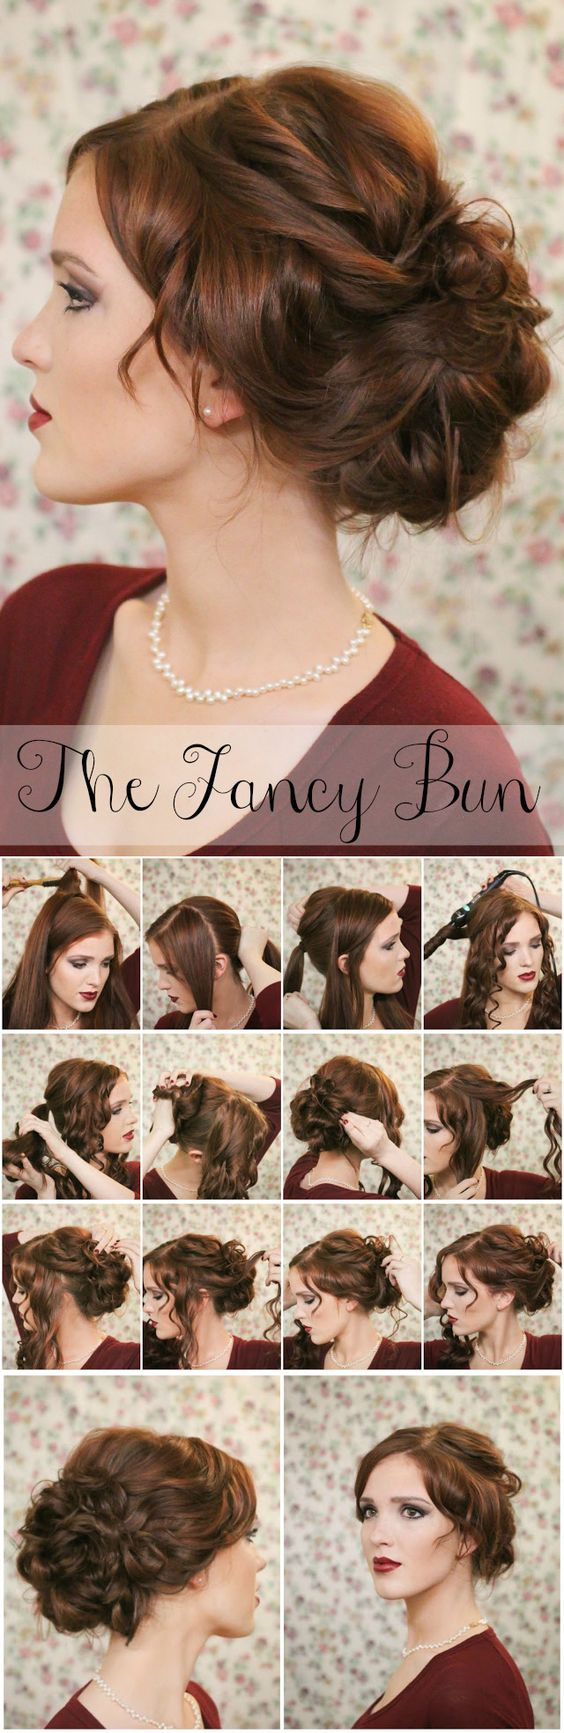 best images about hair on pinterest warm weather loose updo and